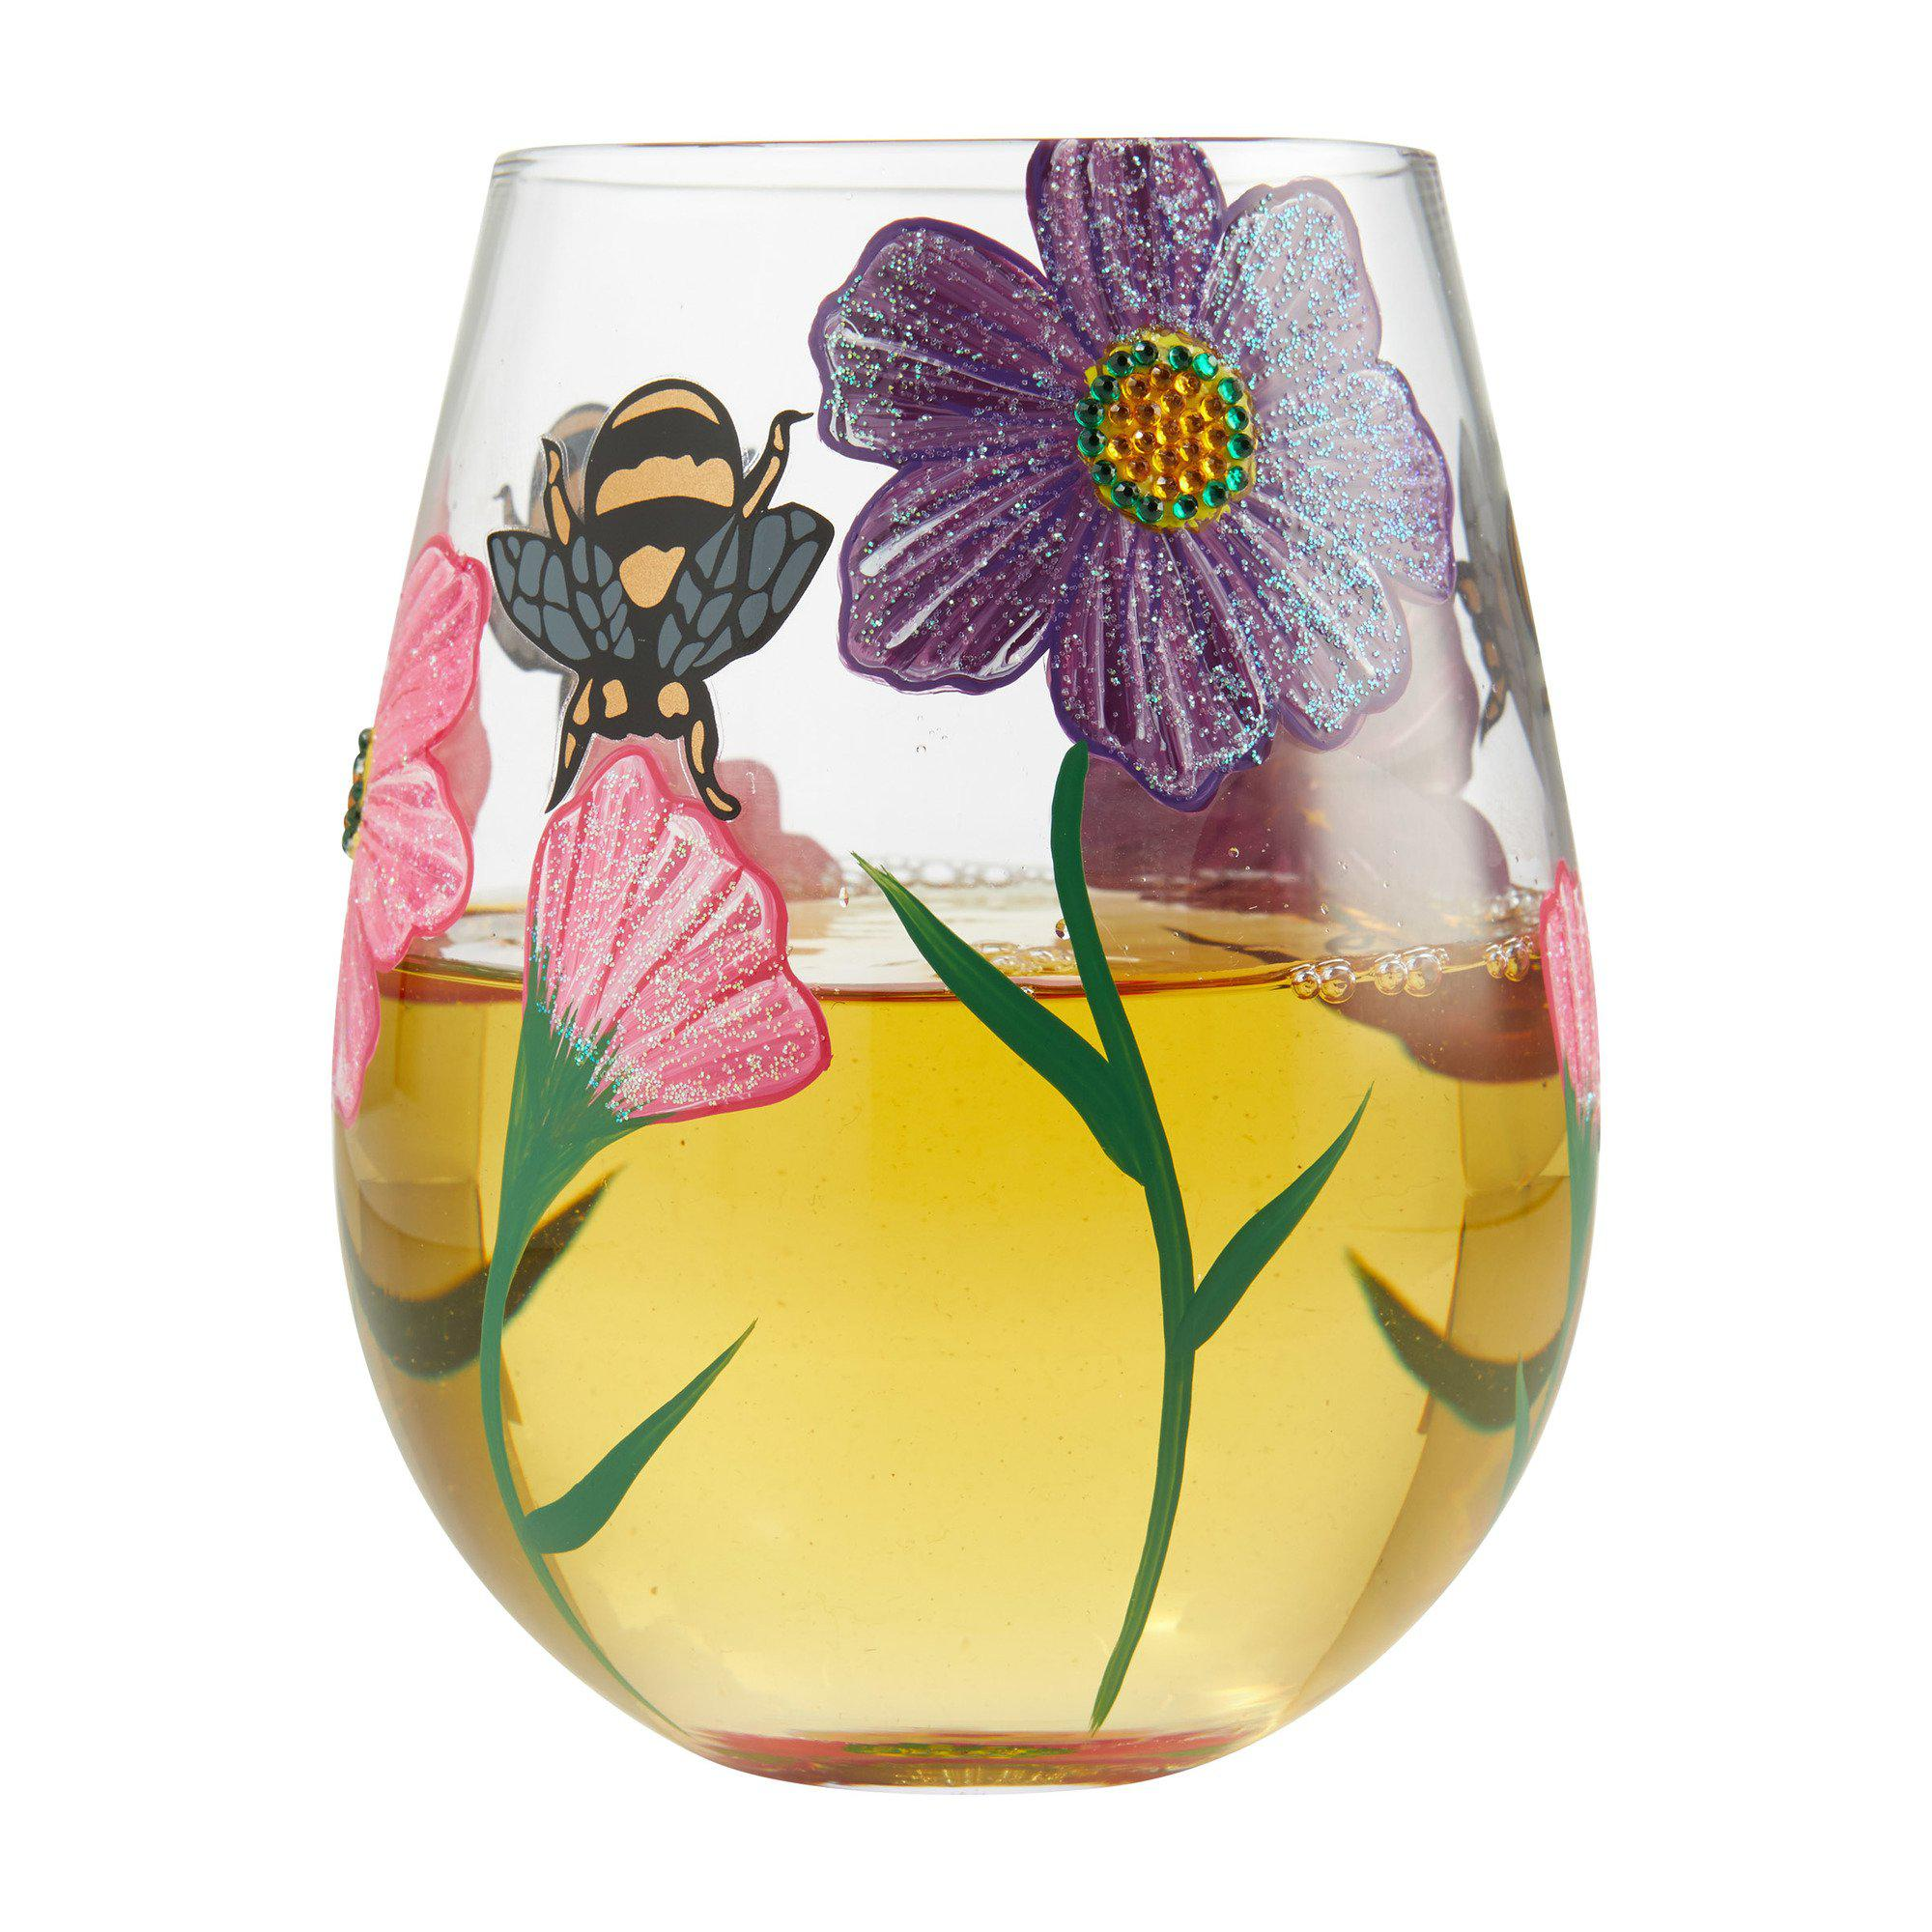 My Drinking Garden Stemless Wine Glass by Lolita®-Stemless Wine Glass-Designs by Lolita® (Enesco)-Top Notch Gift Shop